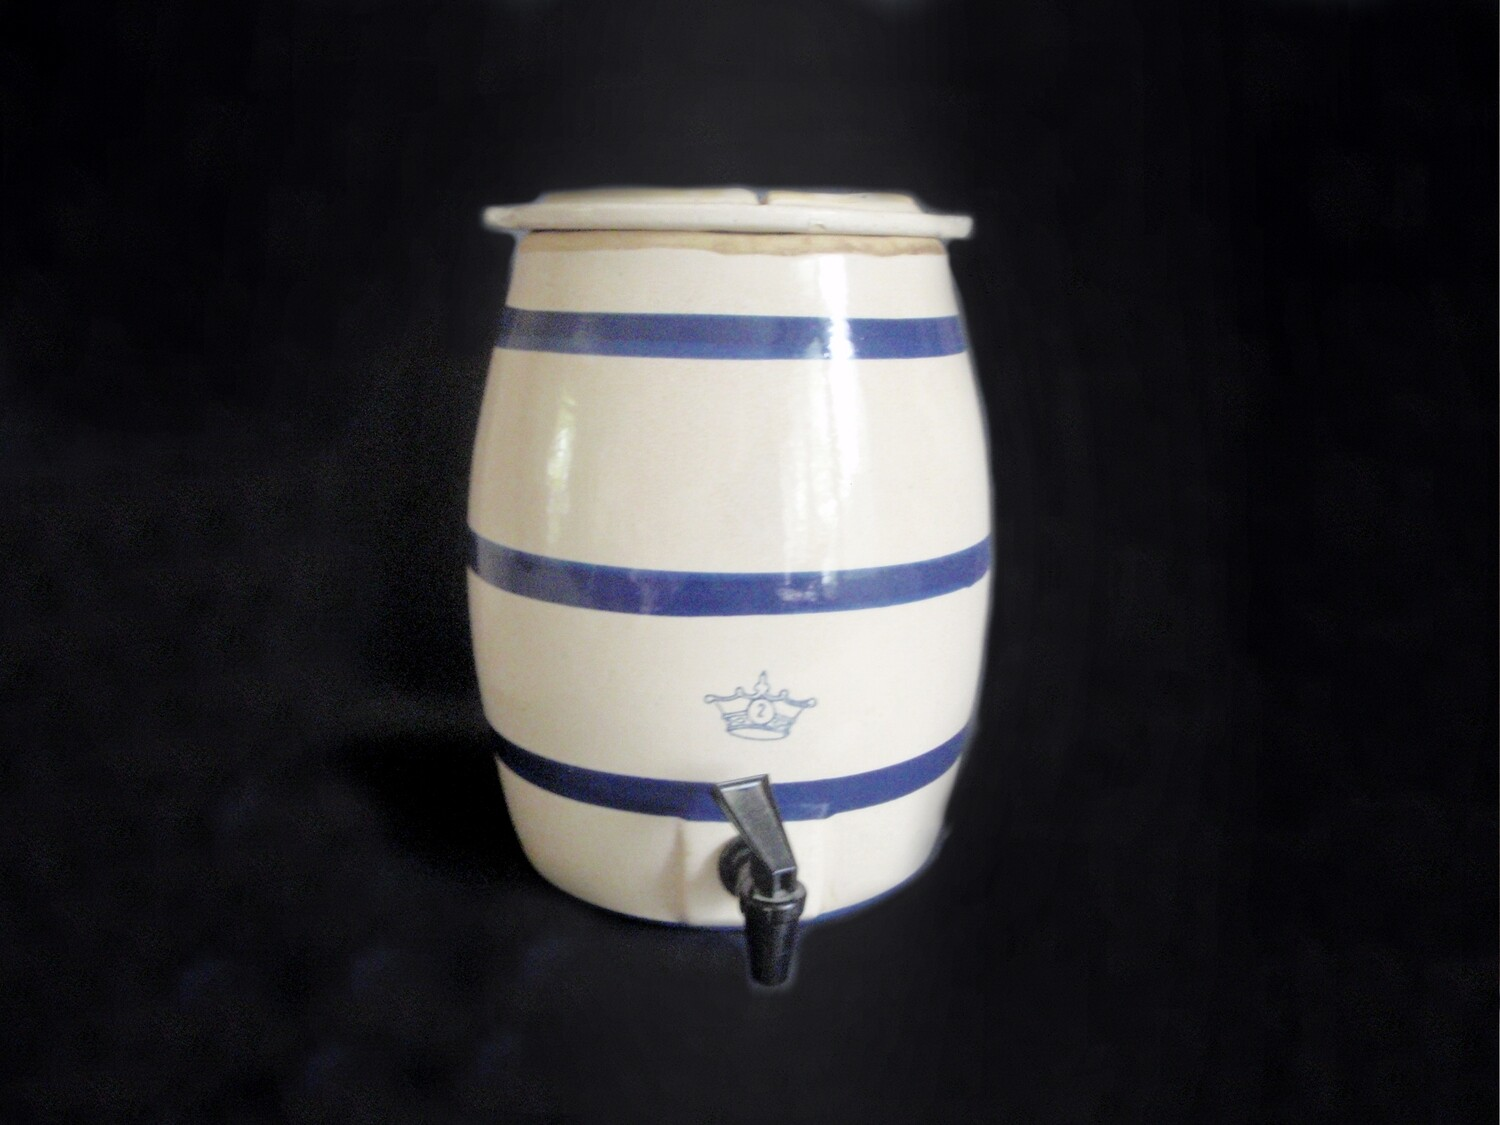 Vintage Stoneware Water Dispenser and Cooler 2 Gallon by Robinson Ransbottom